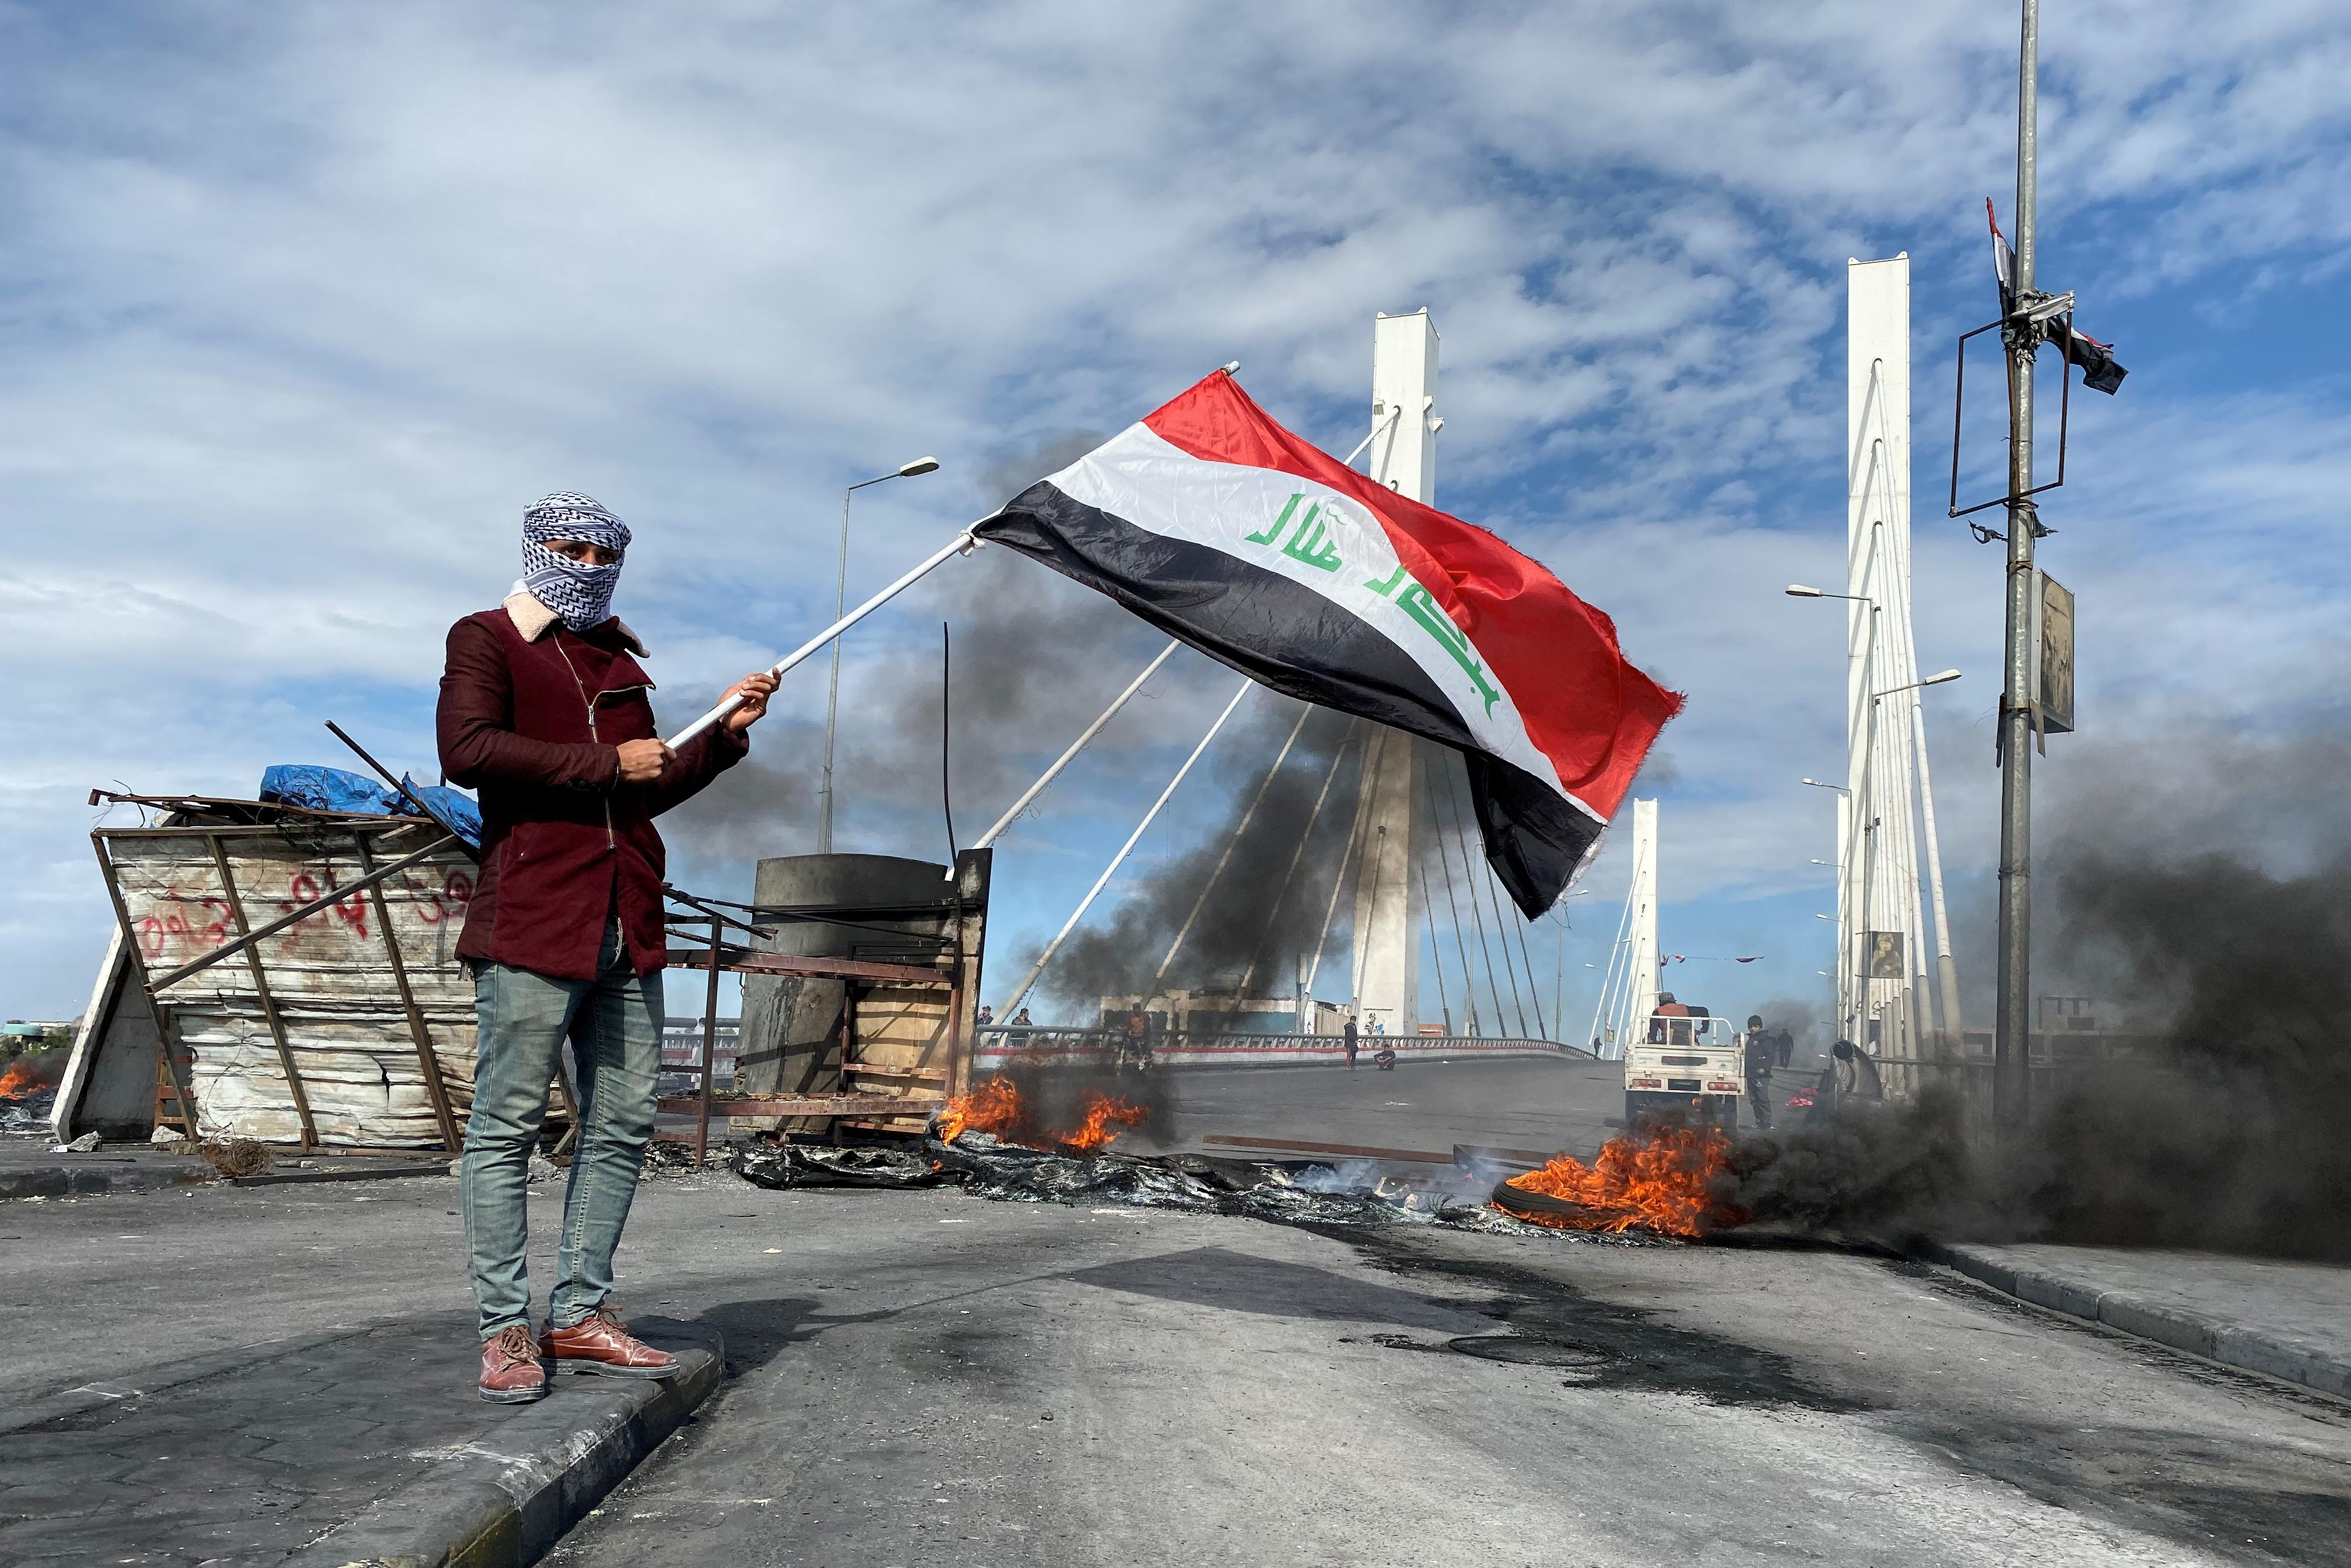 Iraqi security forces raid protest camps after Sadr supporters...